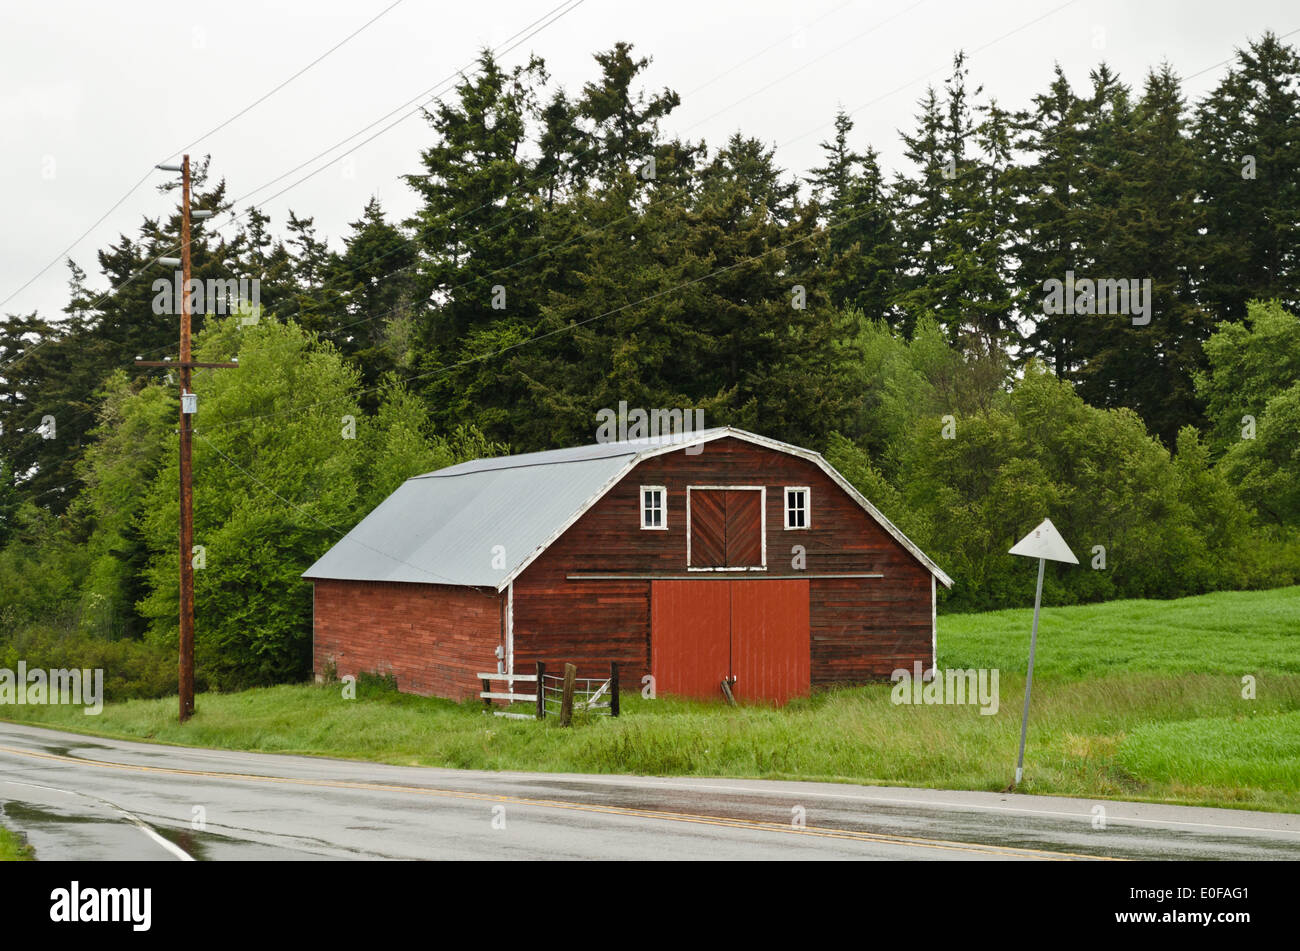 Old red barn building on Whidbey Island, Washington State.  Rural countryside.  American country road. - Stock Image